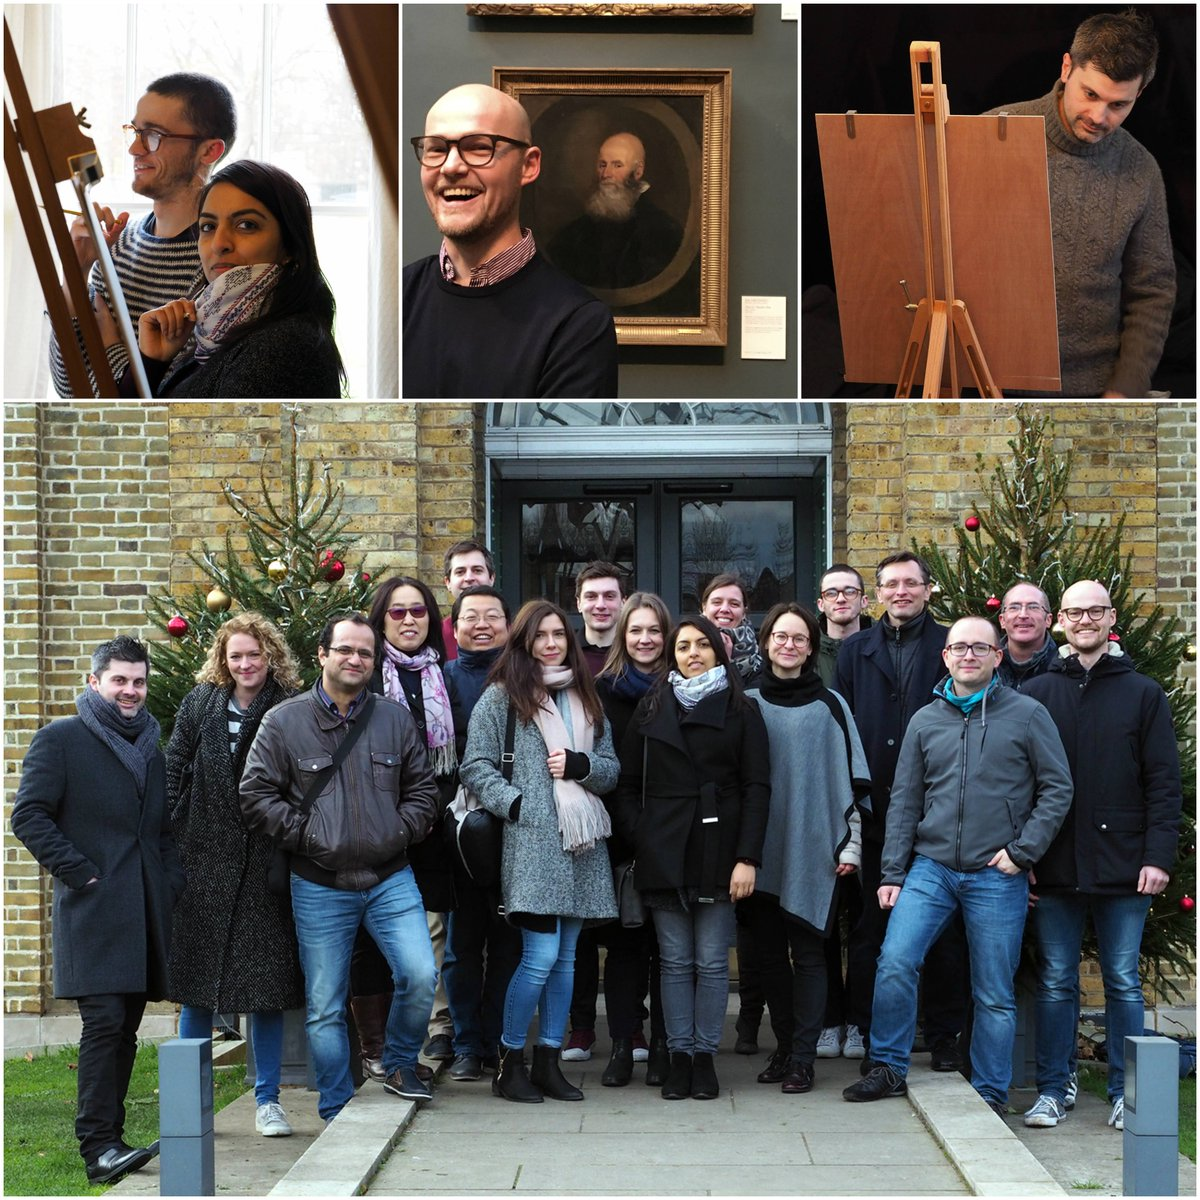 Last week we swapped pipettes for paintbrushes @DulwichGallery. Some of us even managed to create our own masterpiece!